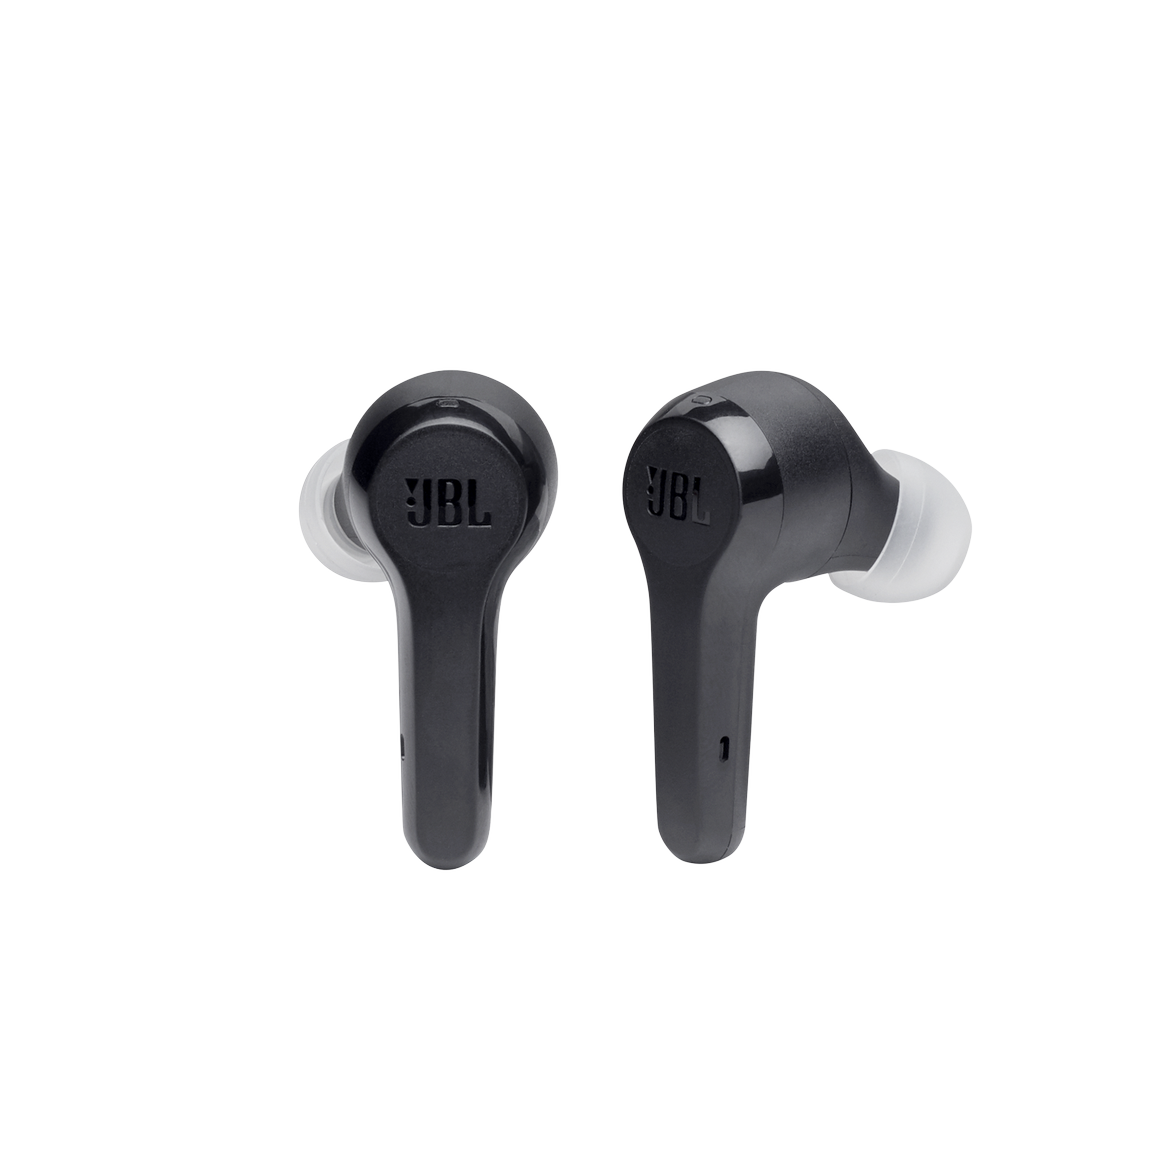 JBL_TUNE 215TWS_Product Image_Black_Earbuds Hero